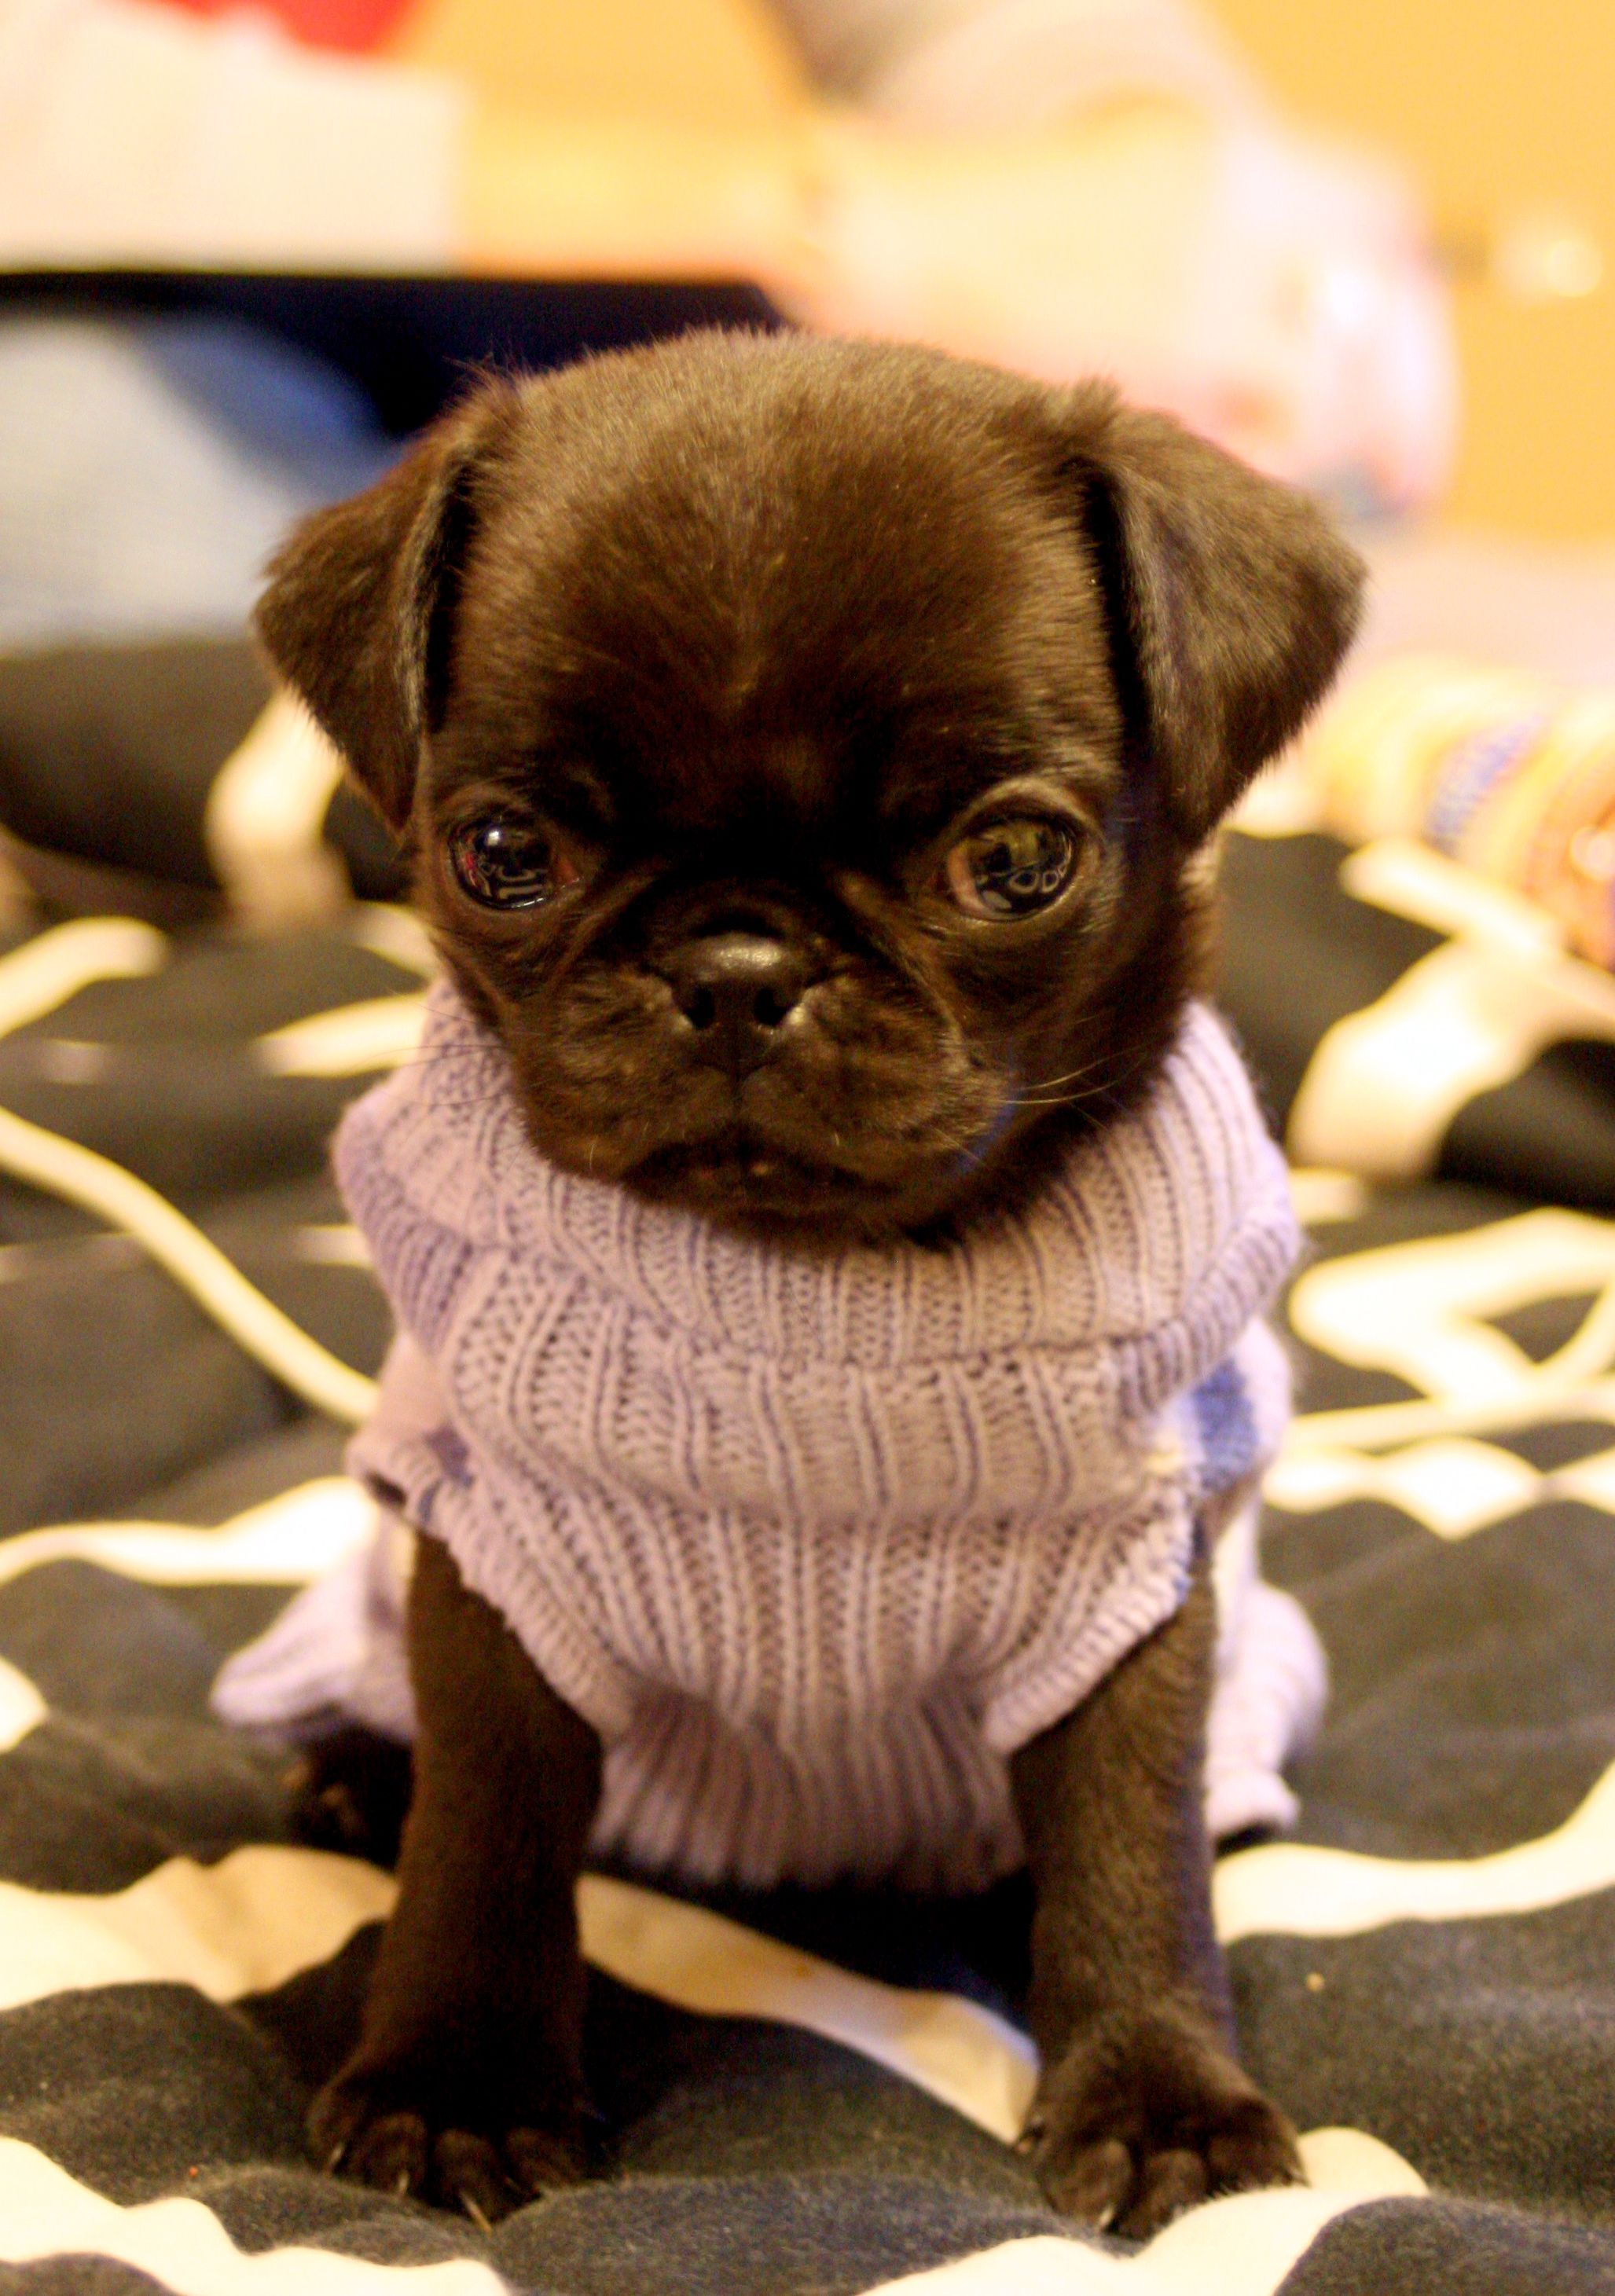 Baby Goats Cutest Baby Farm Animal Hands Down Baby Pugs